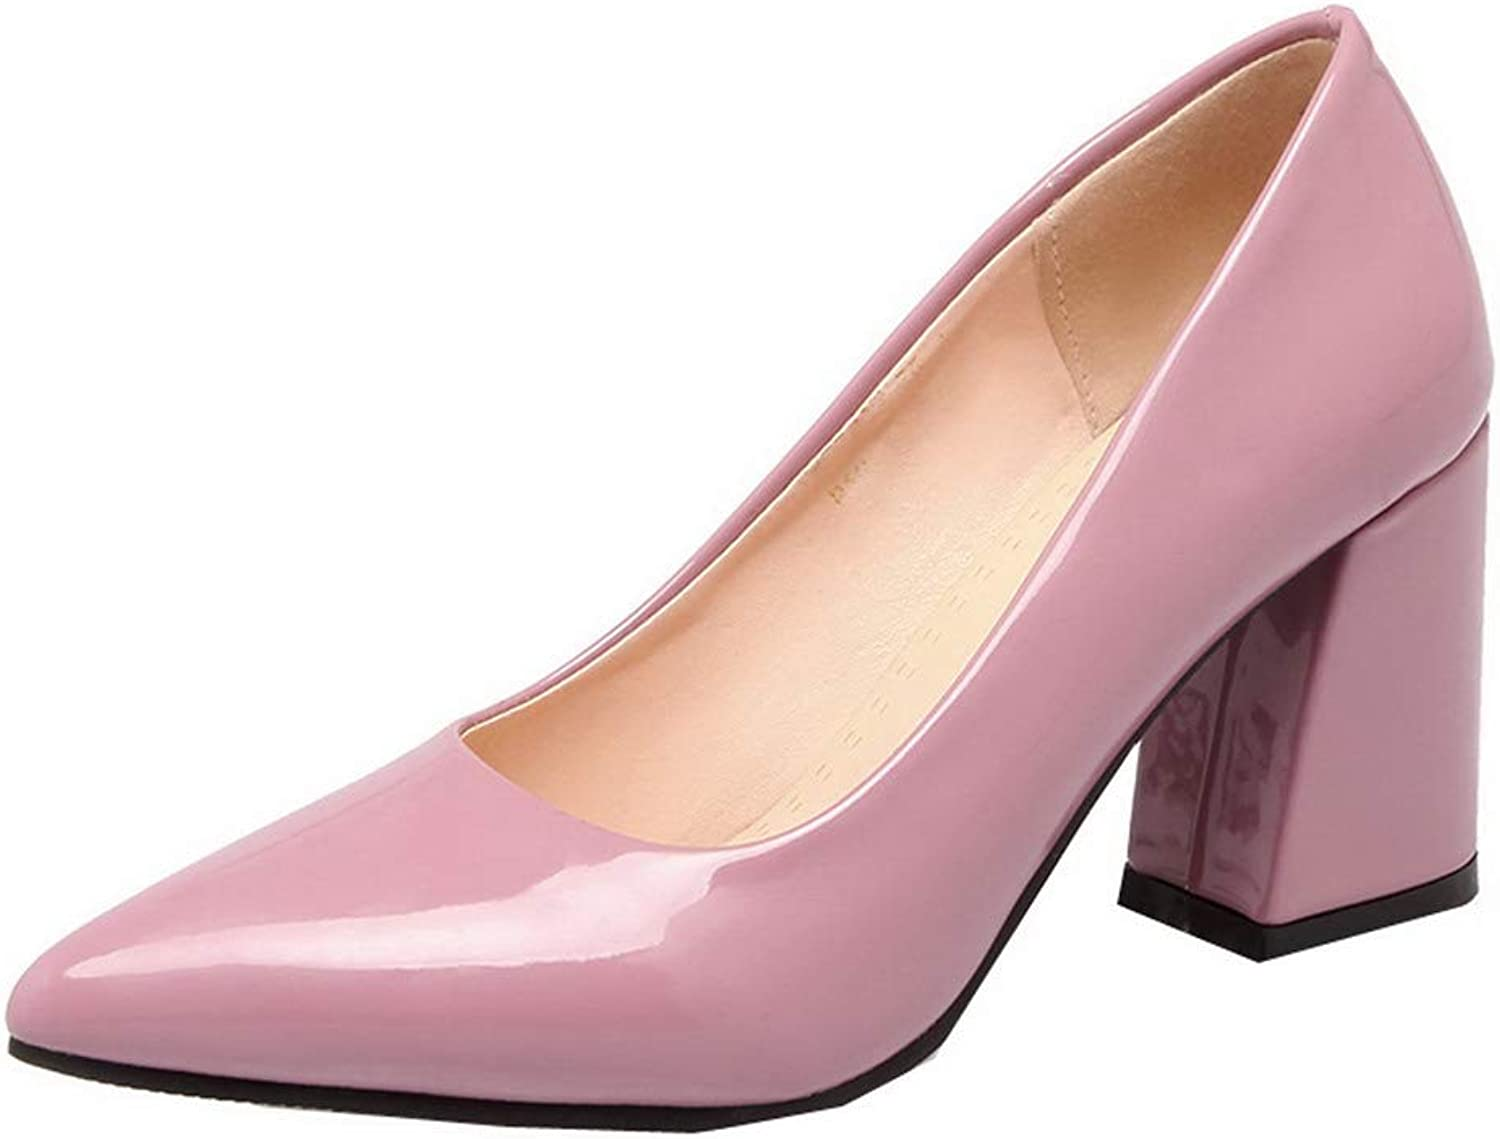 WeenFashion Women's Pull-On High-Heels Patent Leather Closed-Toe Pumps-shoes,AMGDX007106